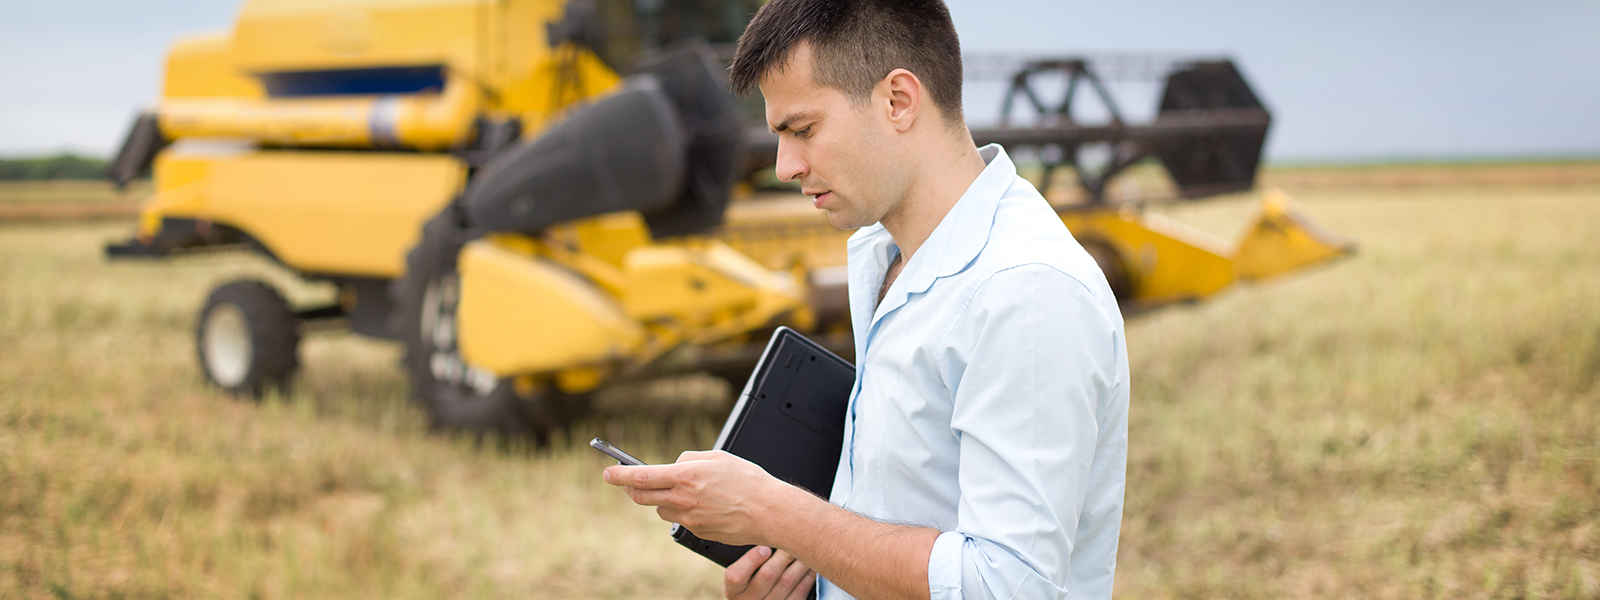 farmers-consuming-digital media-or-tuning-out